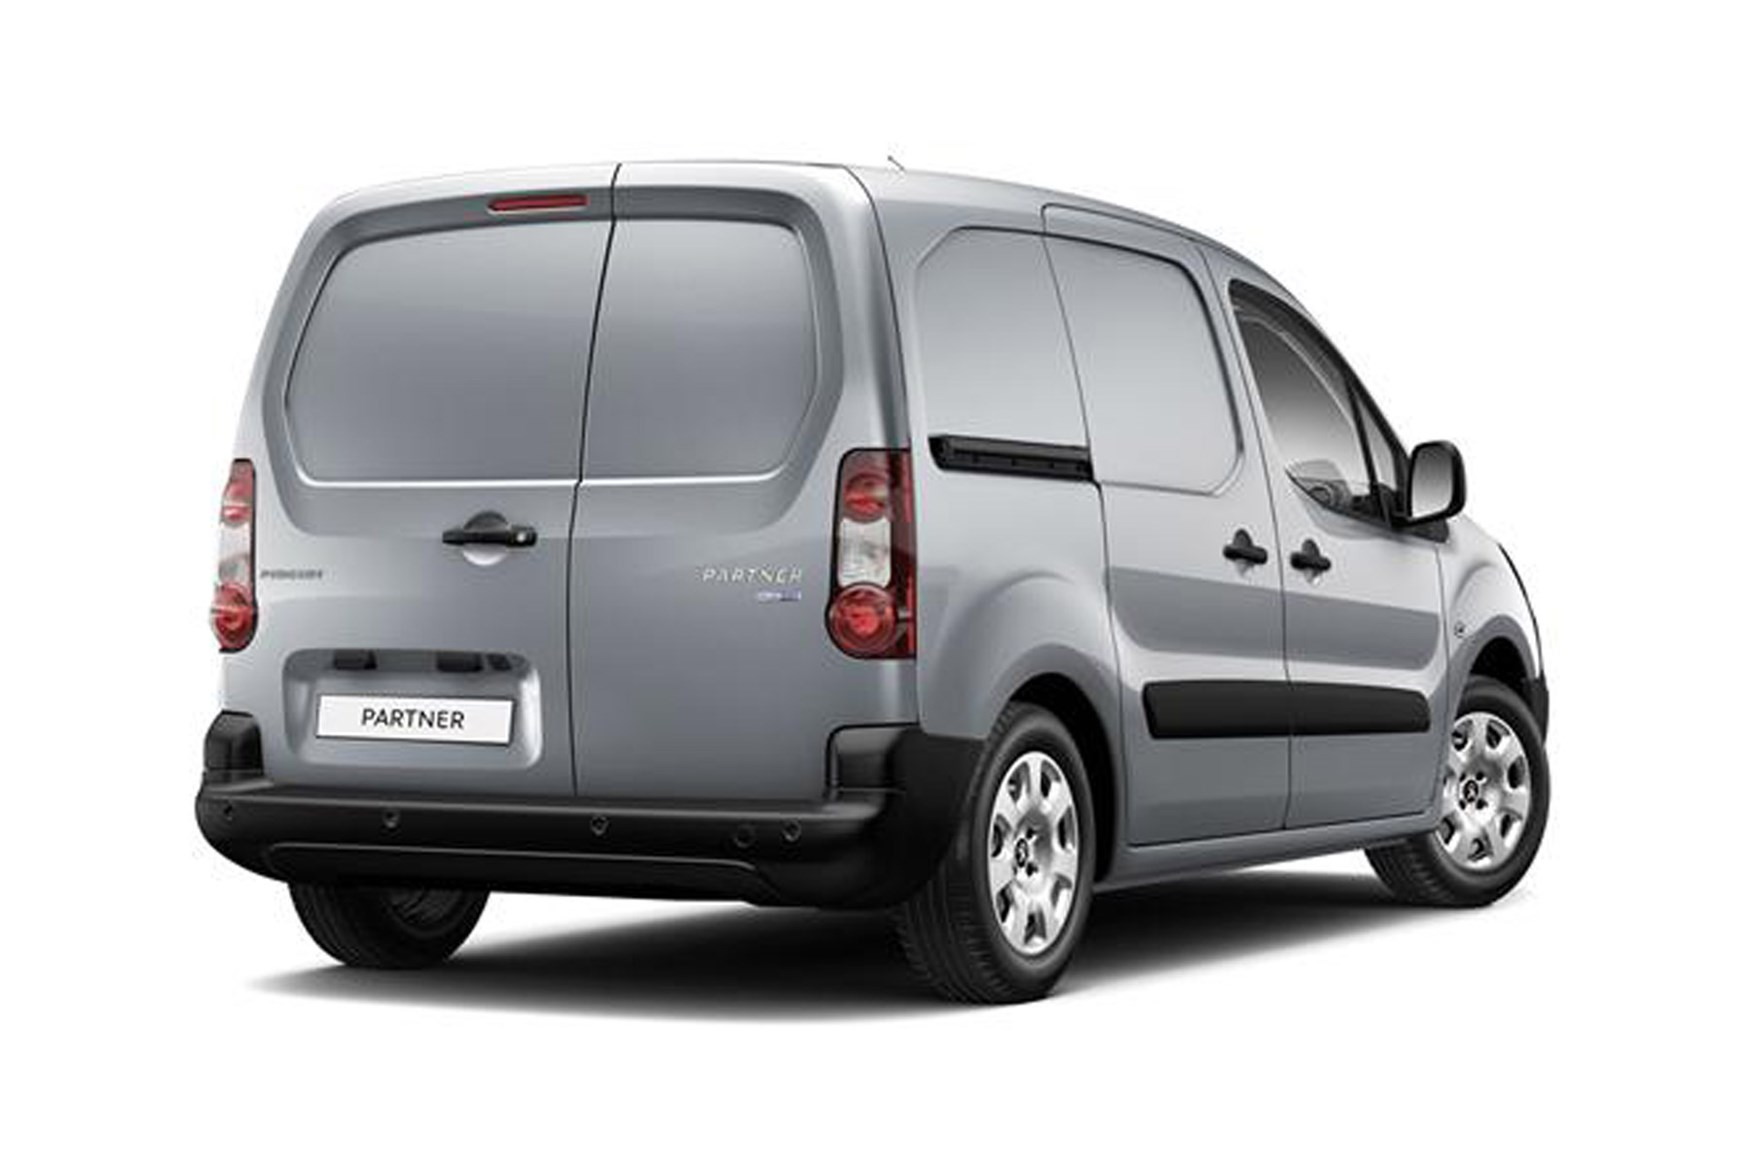 Peugeot Partner full review on Parkers Vans - 2015 facelift rear exterior